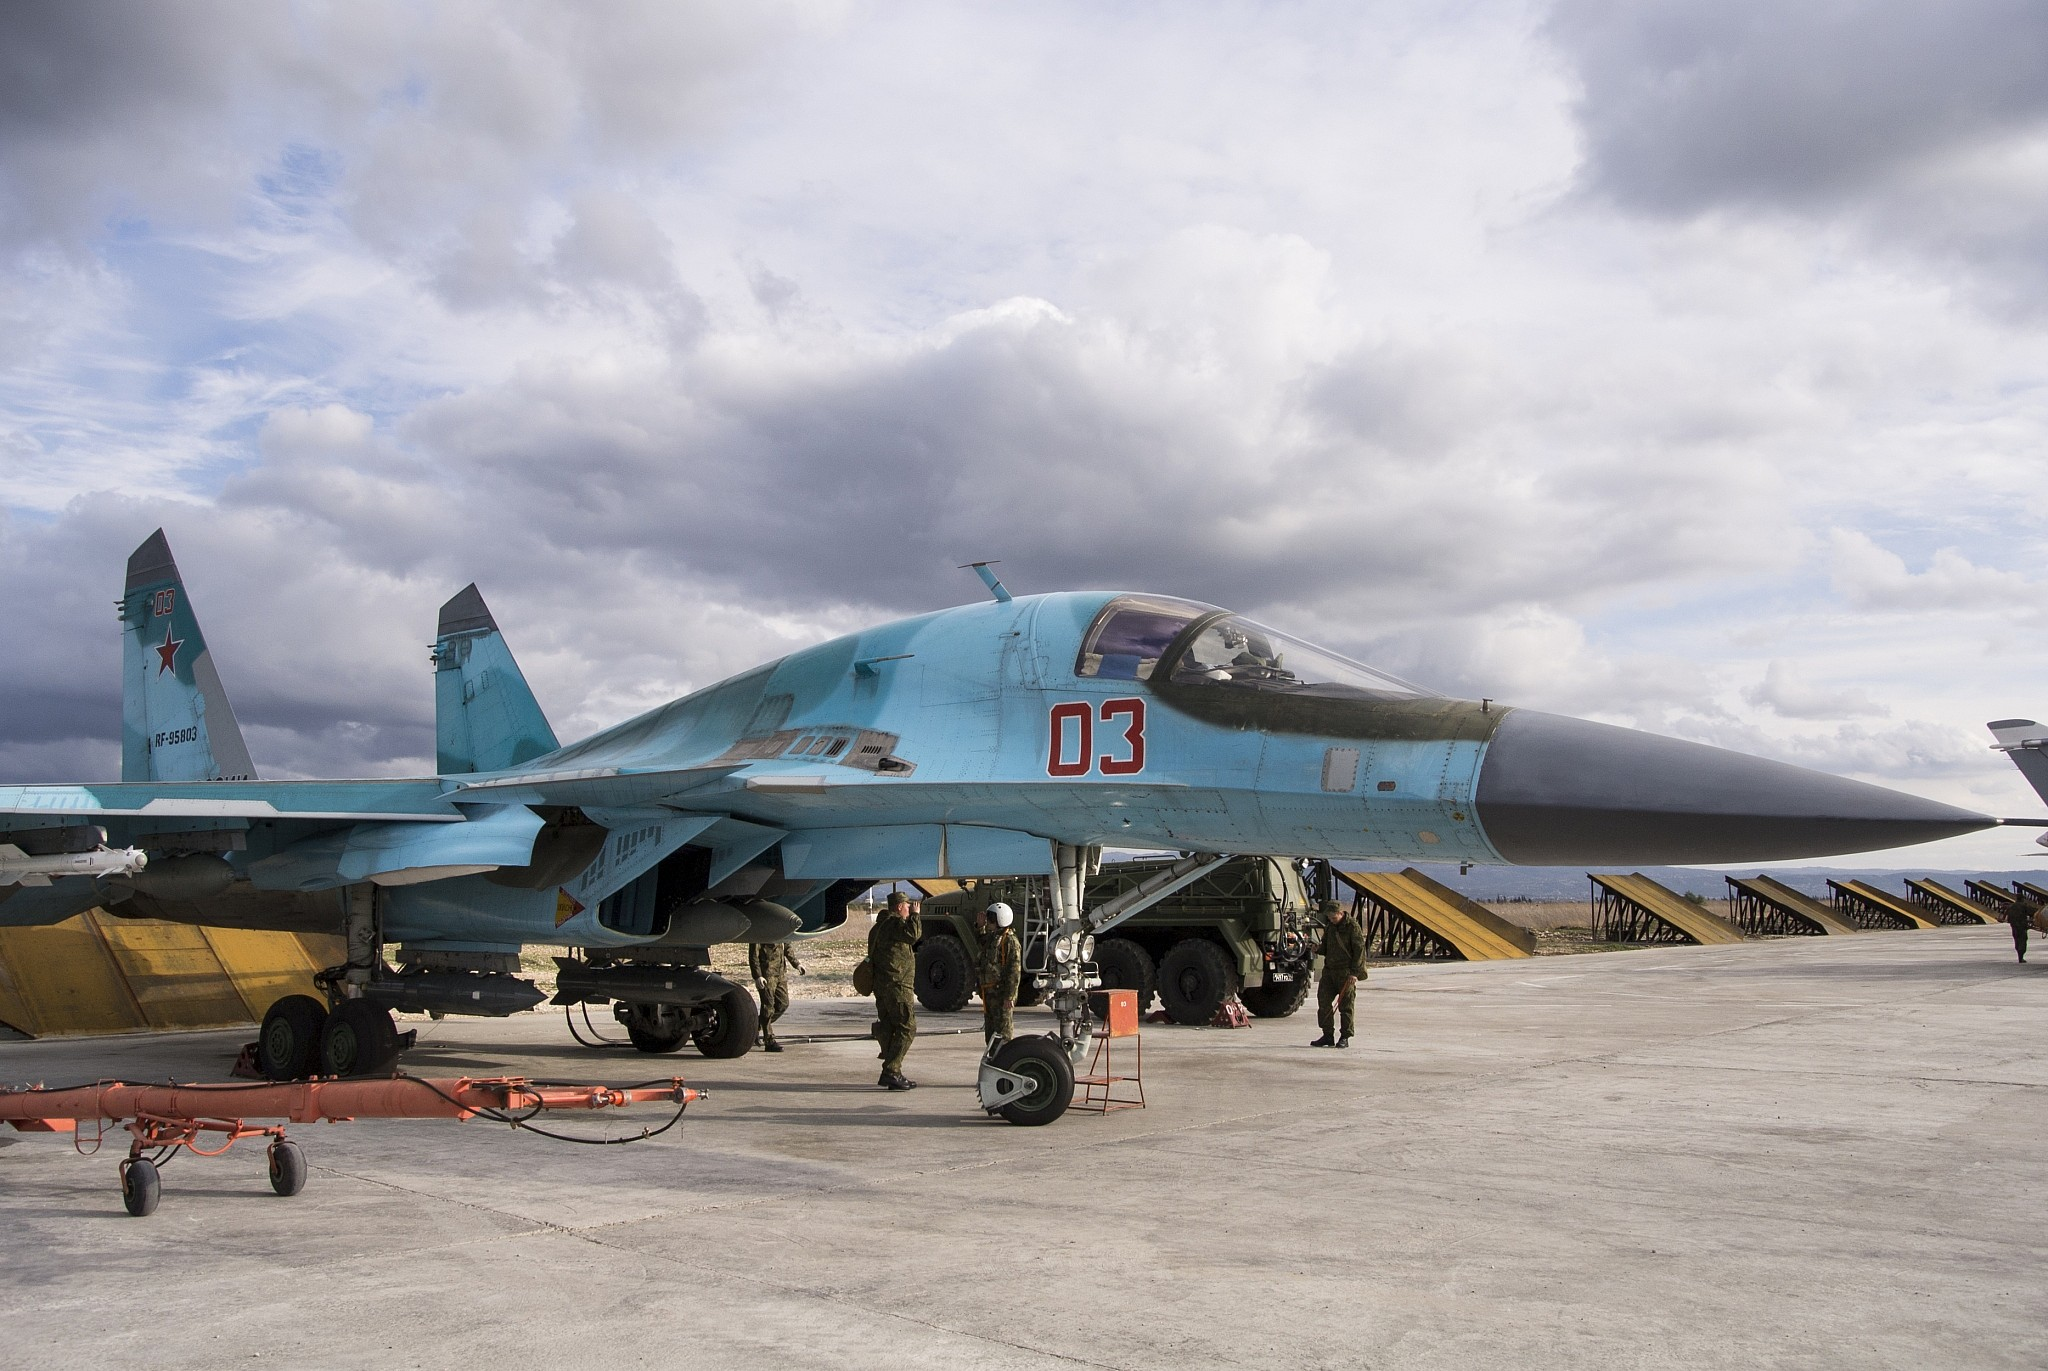 A Russian air force technician reports to a pilot that a Su-34 bomber is ready for a combat mission at Hemeimeem airbase in Syria